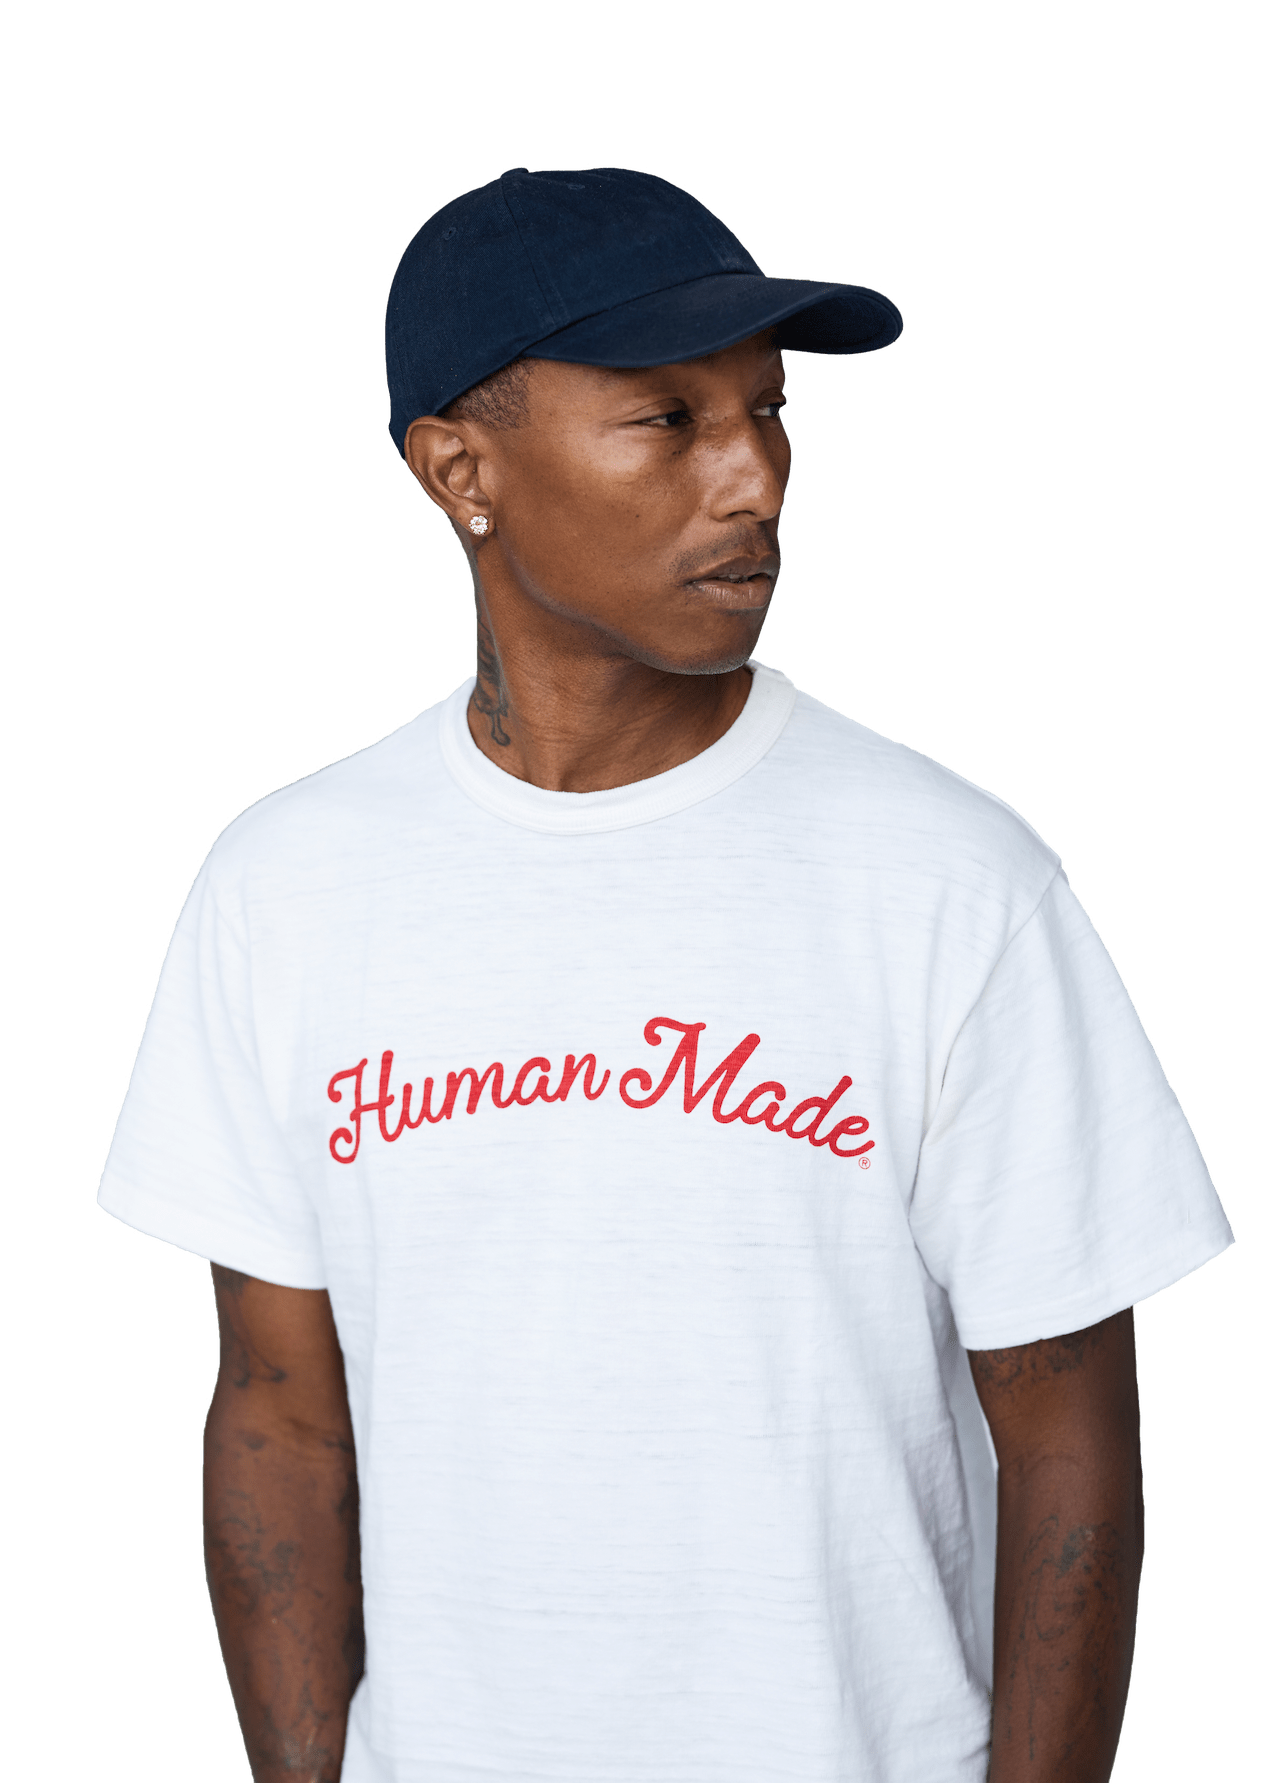 Image of Pharrell Williams as collaboration with Untitled Toronto Condos.